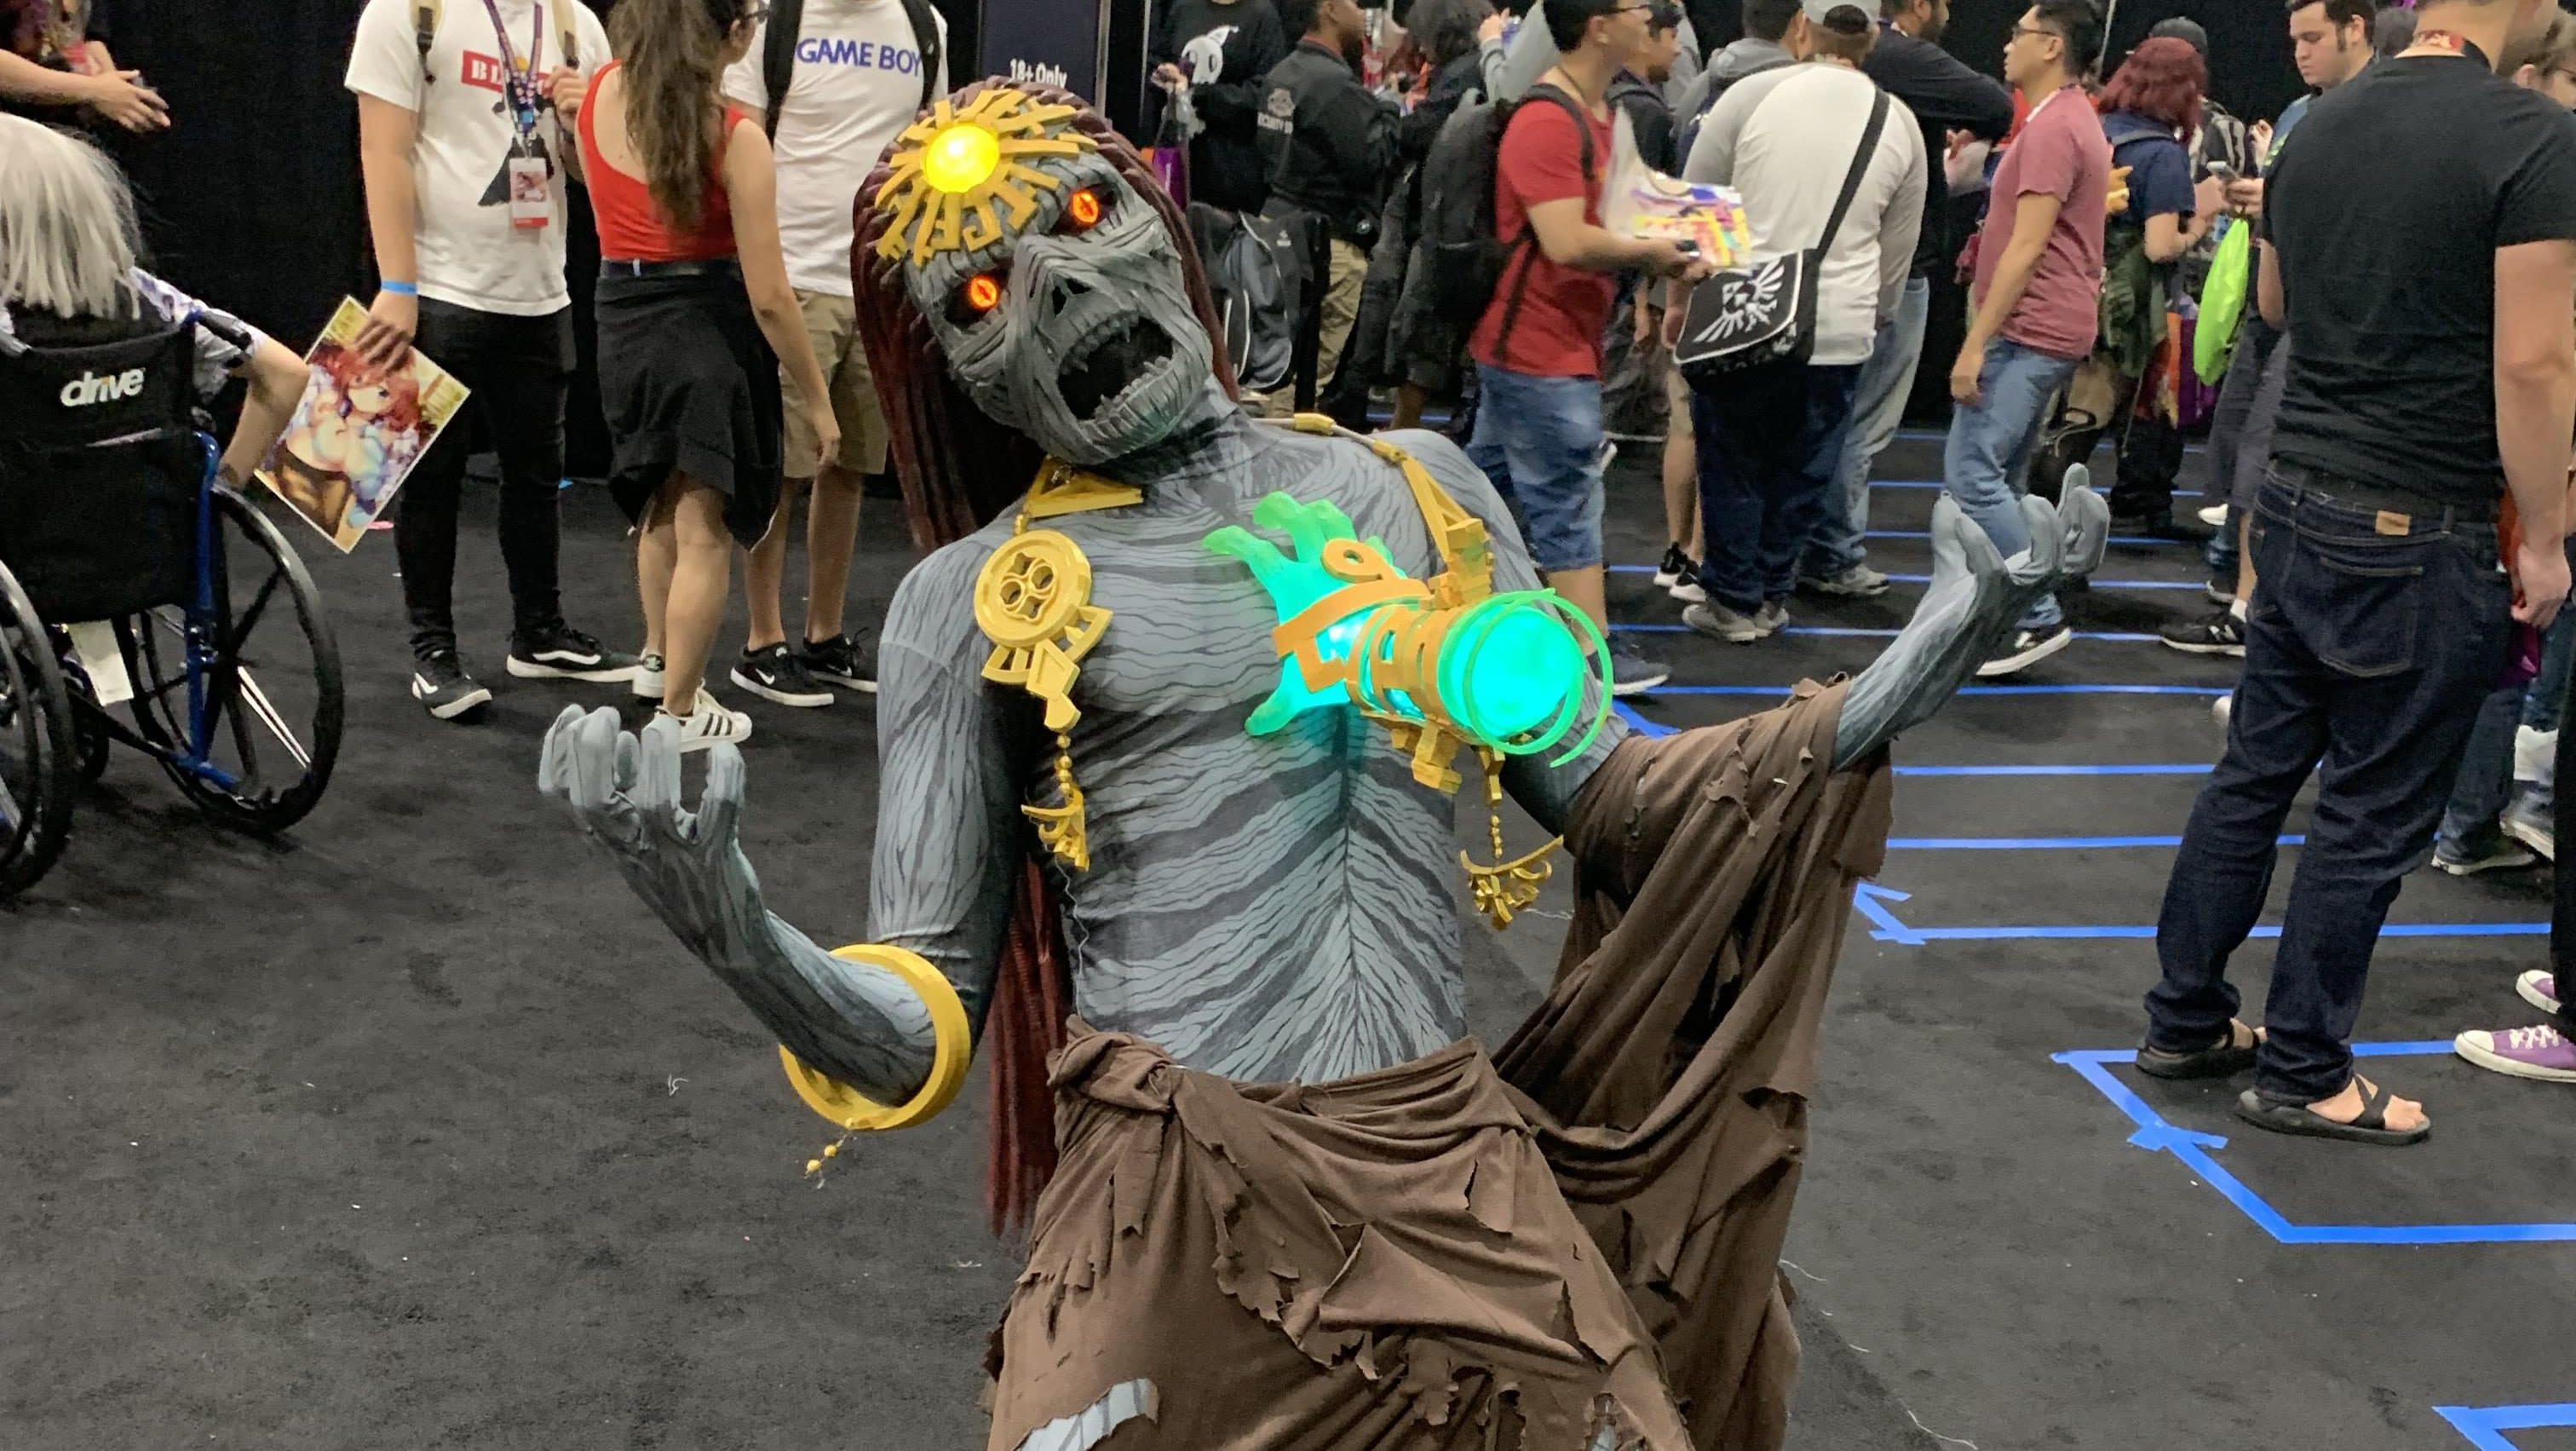 Alucina con este logrado cosplay de 'Ganondorf' en Zelda: Breath of the Wild 2